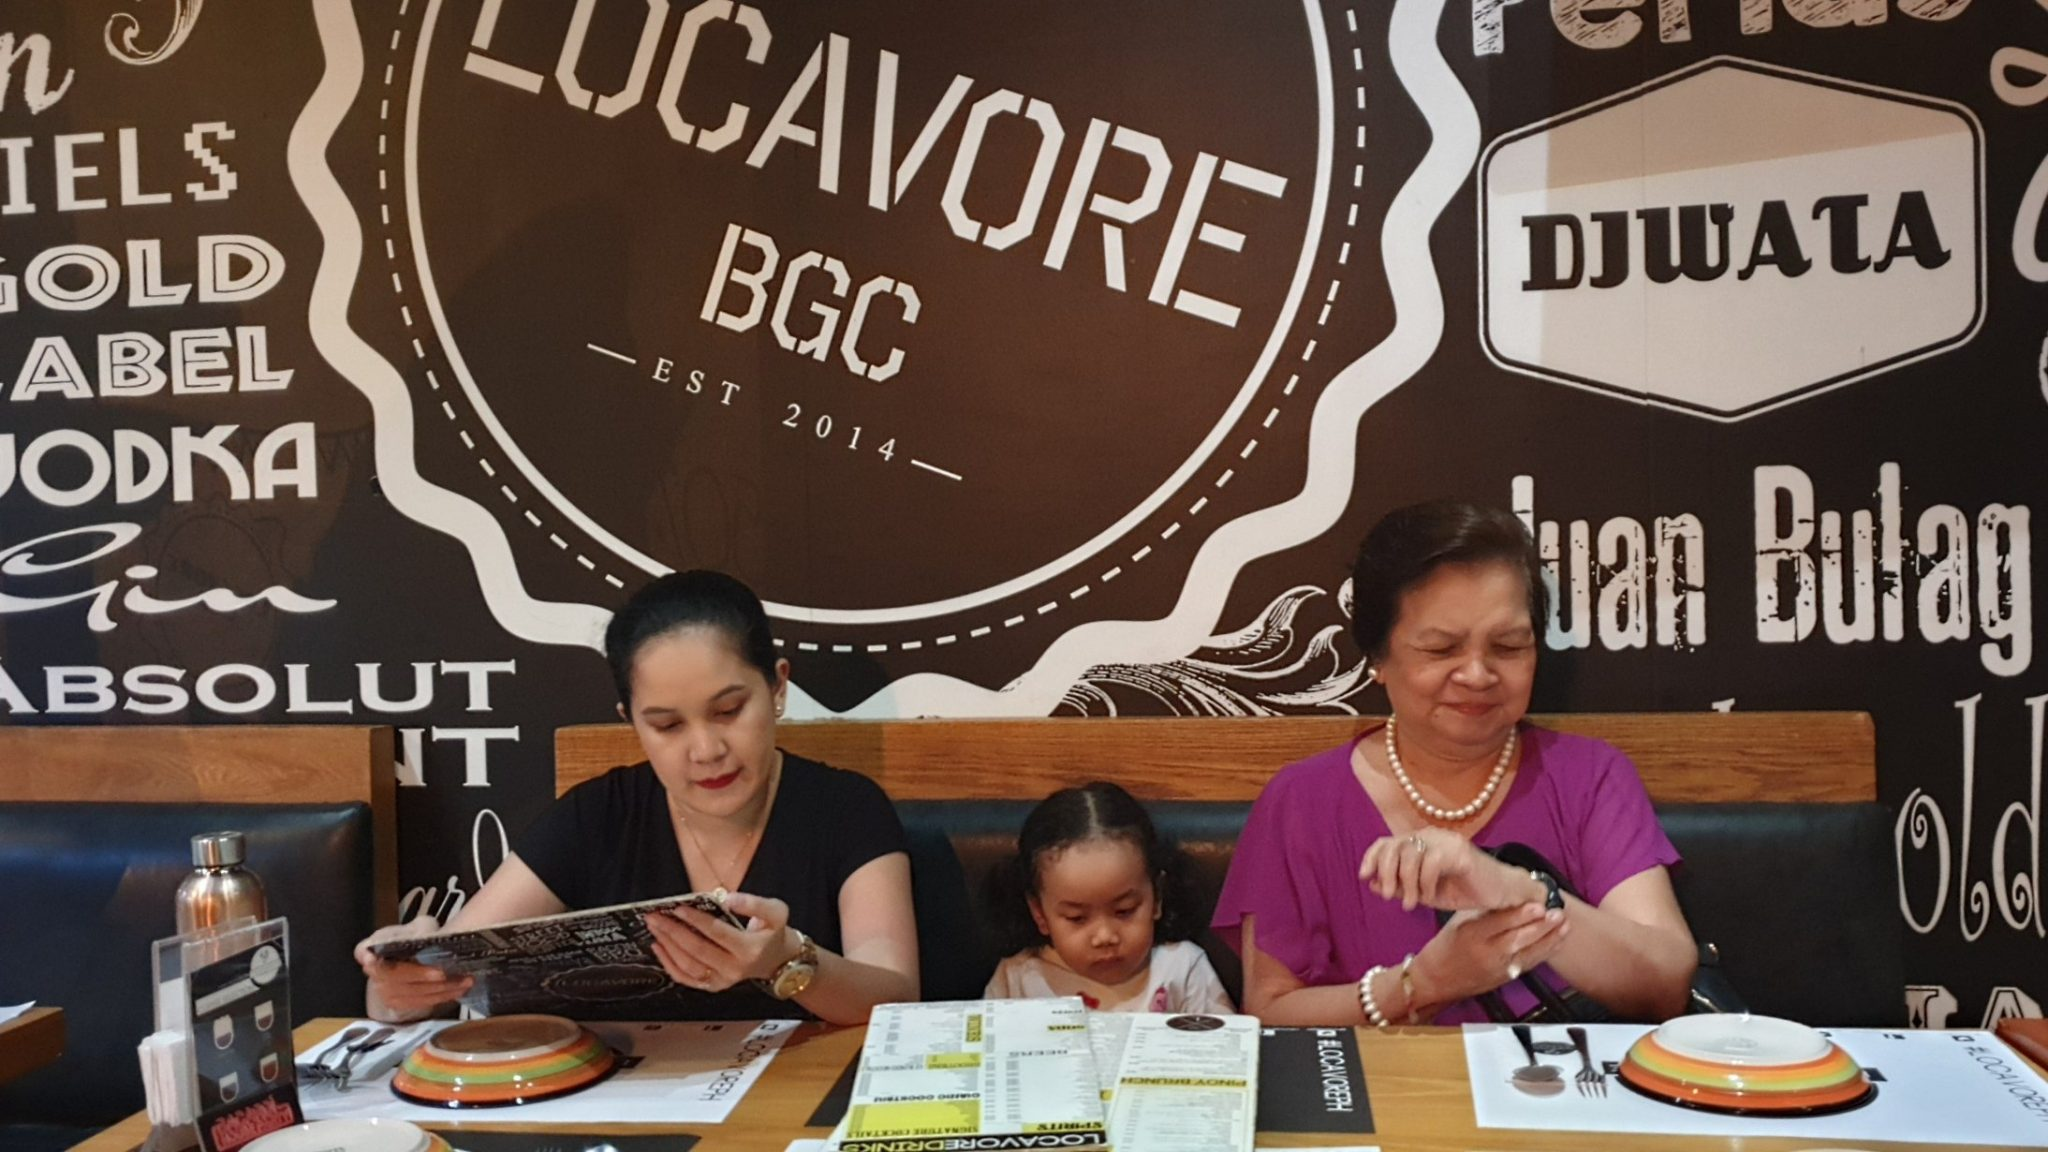 May birthday 2019 at Locavore